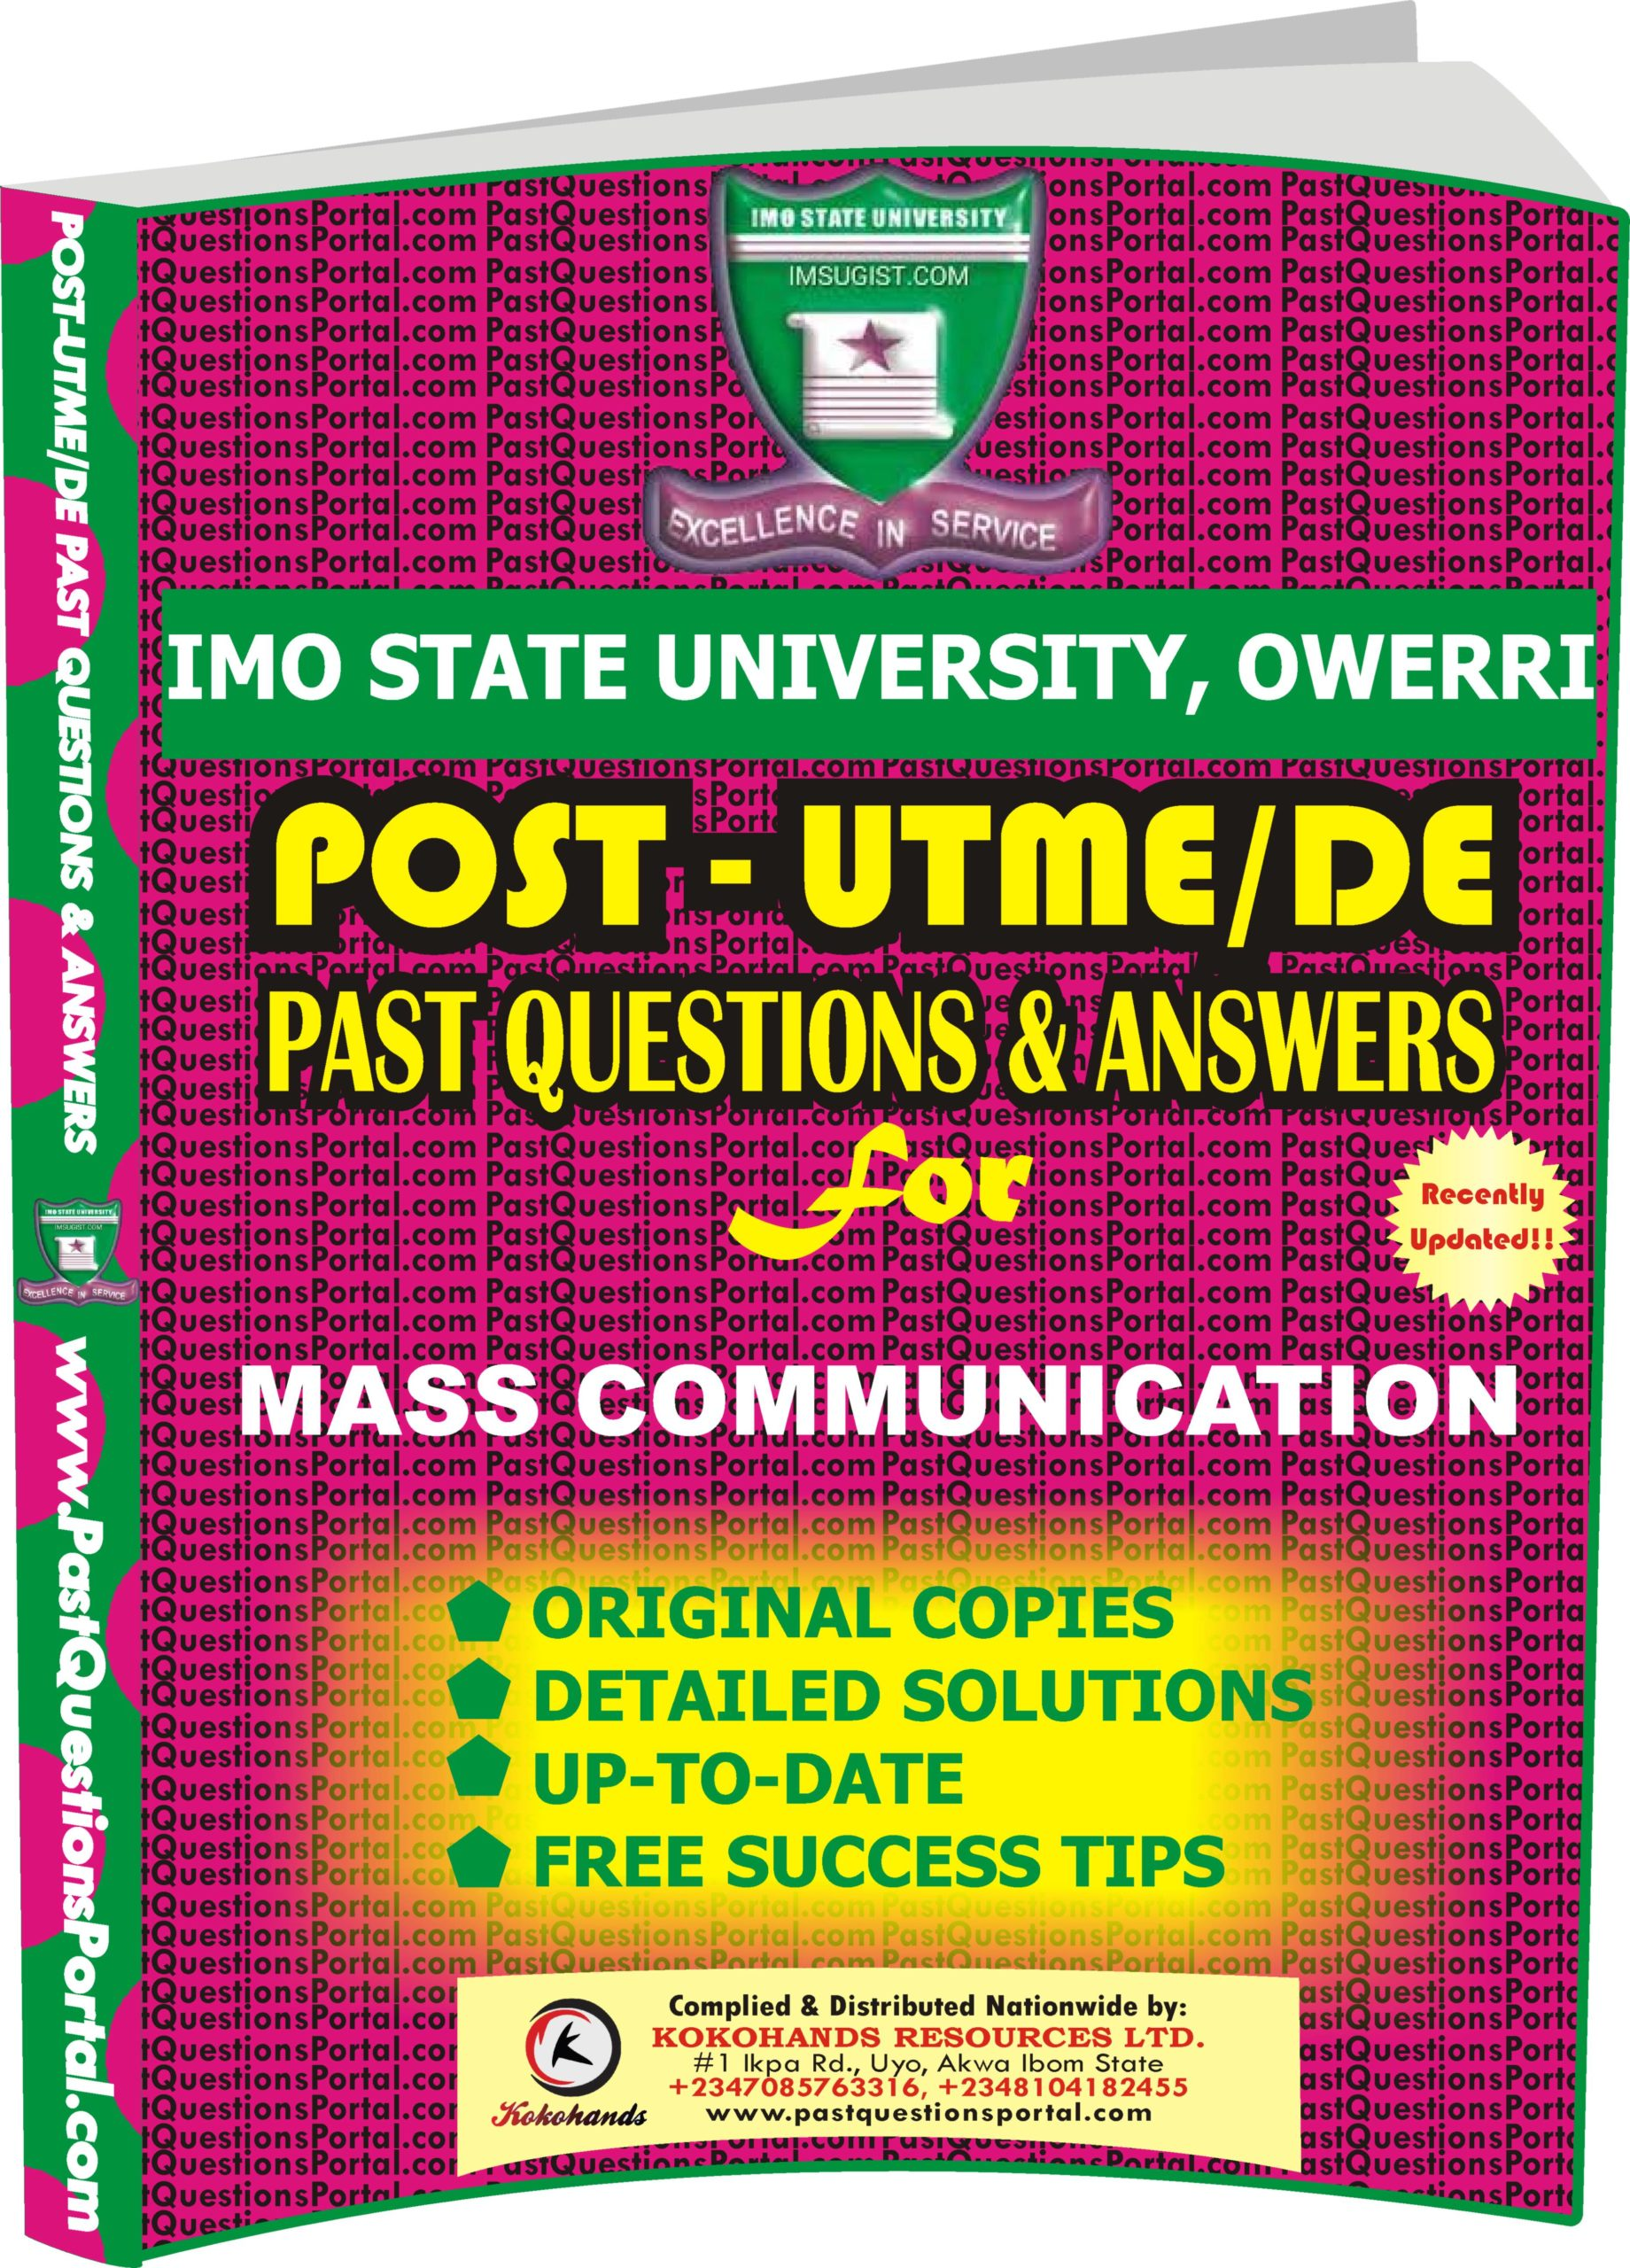 IMSU Post UTME Past Questions for MASS COMMUNICATION